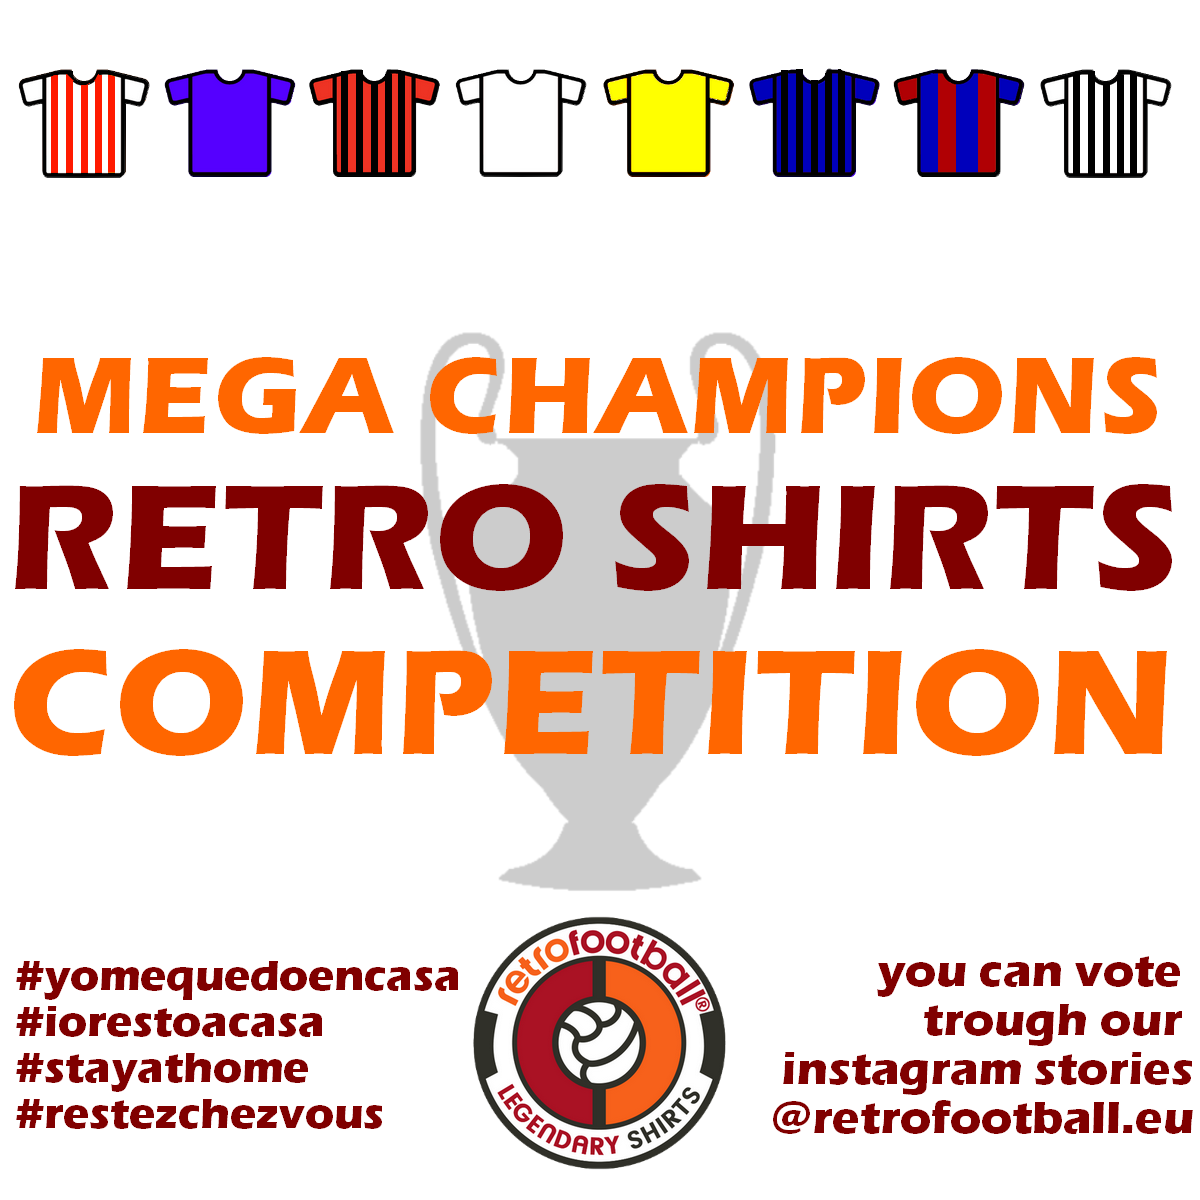 Mega Champions Retro Shirts Competition